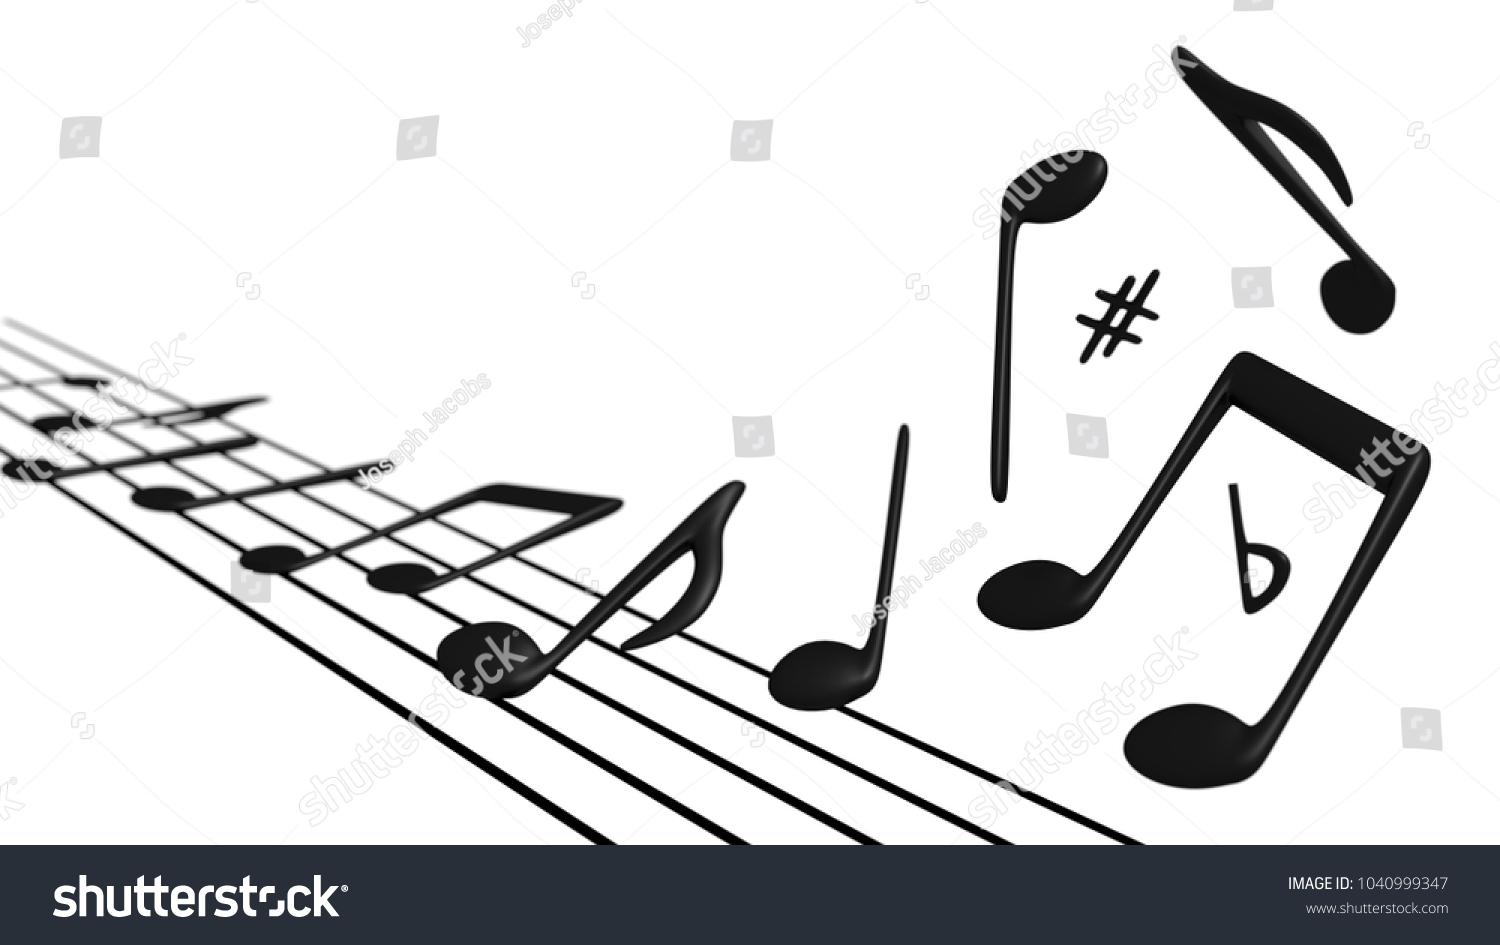 Musical notes symbols flying off staff stock illustration musical notes and symbols flying off a staff into the air biocorpaavc Gallery